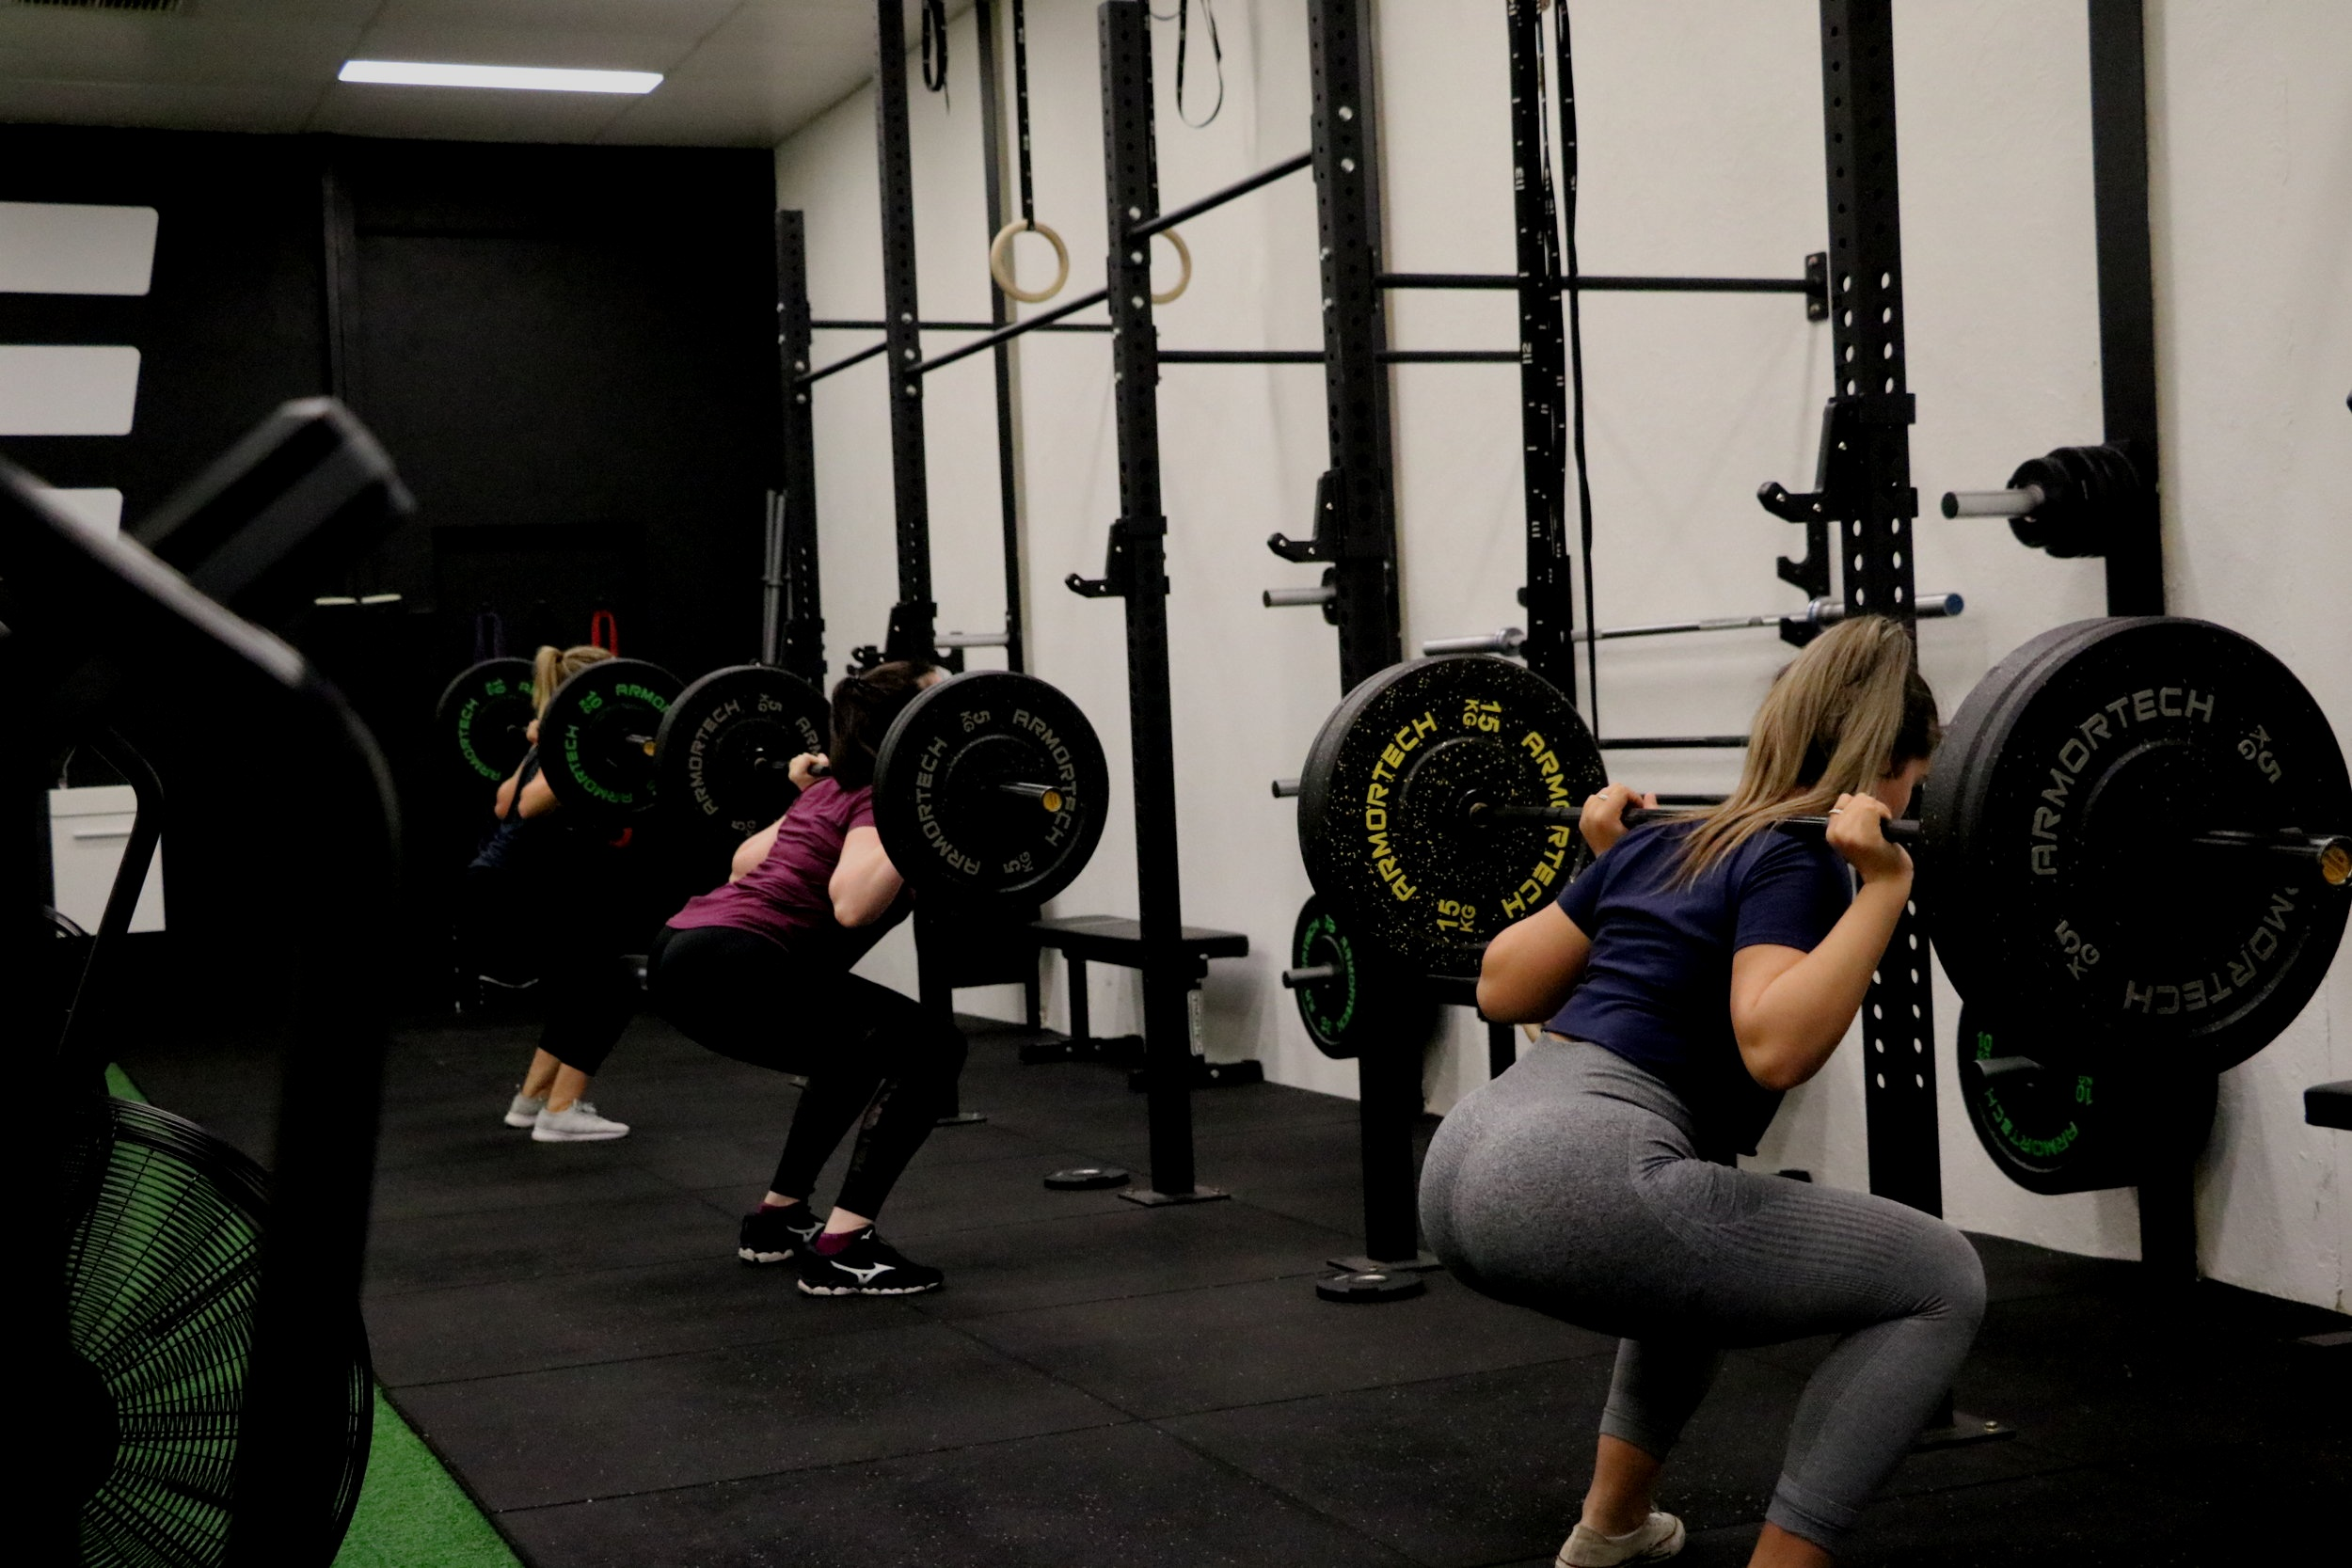 pwr _ (strength) - Strength sessions with purpose. Science based resistance training - for the everyday human.